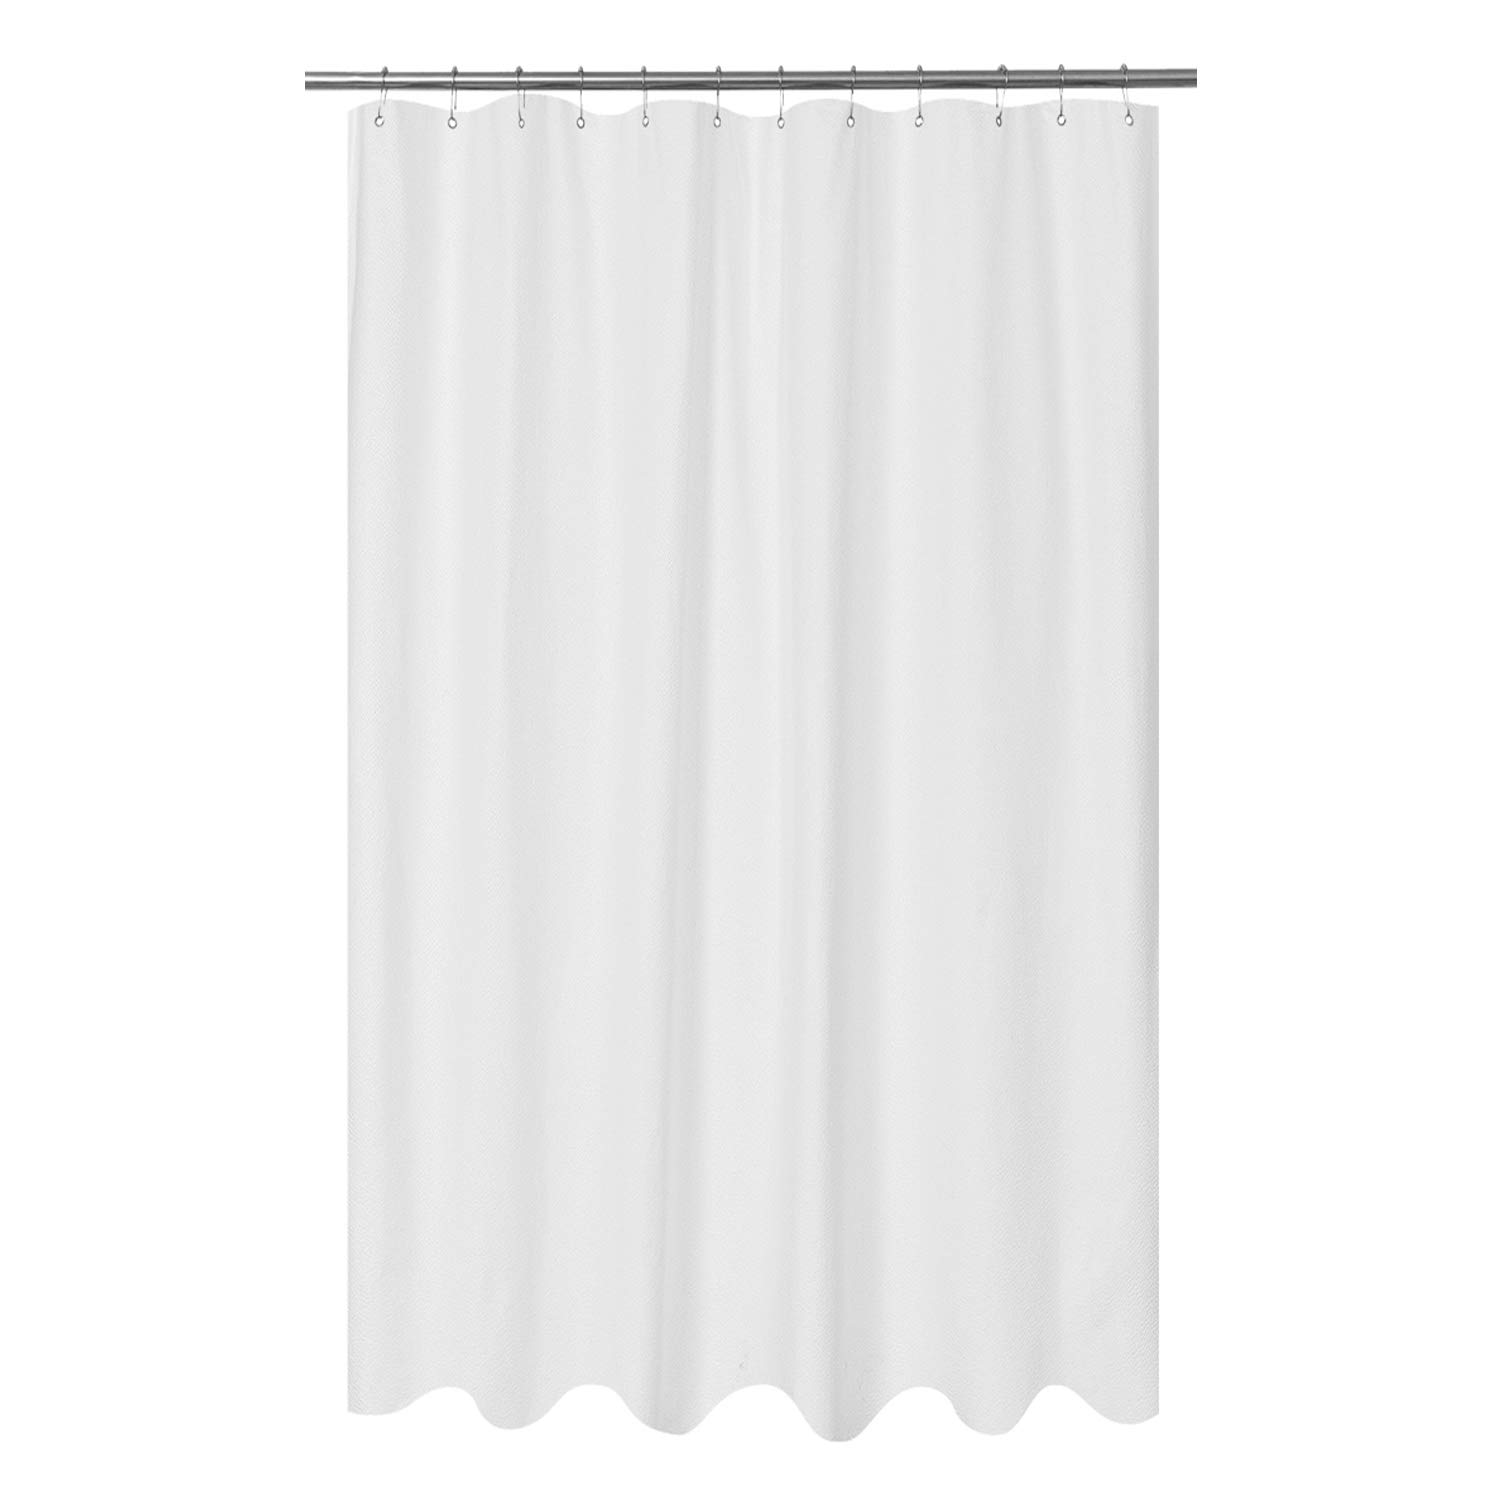 Amazon Mrs Awesome Embossed Microfiber Fabric Extra Long Shower Curtain Liner 84 Inch Length